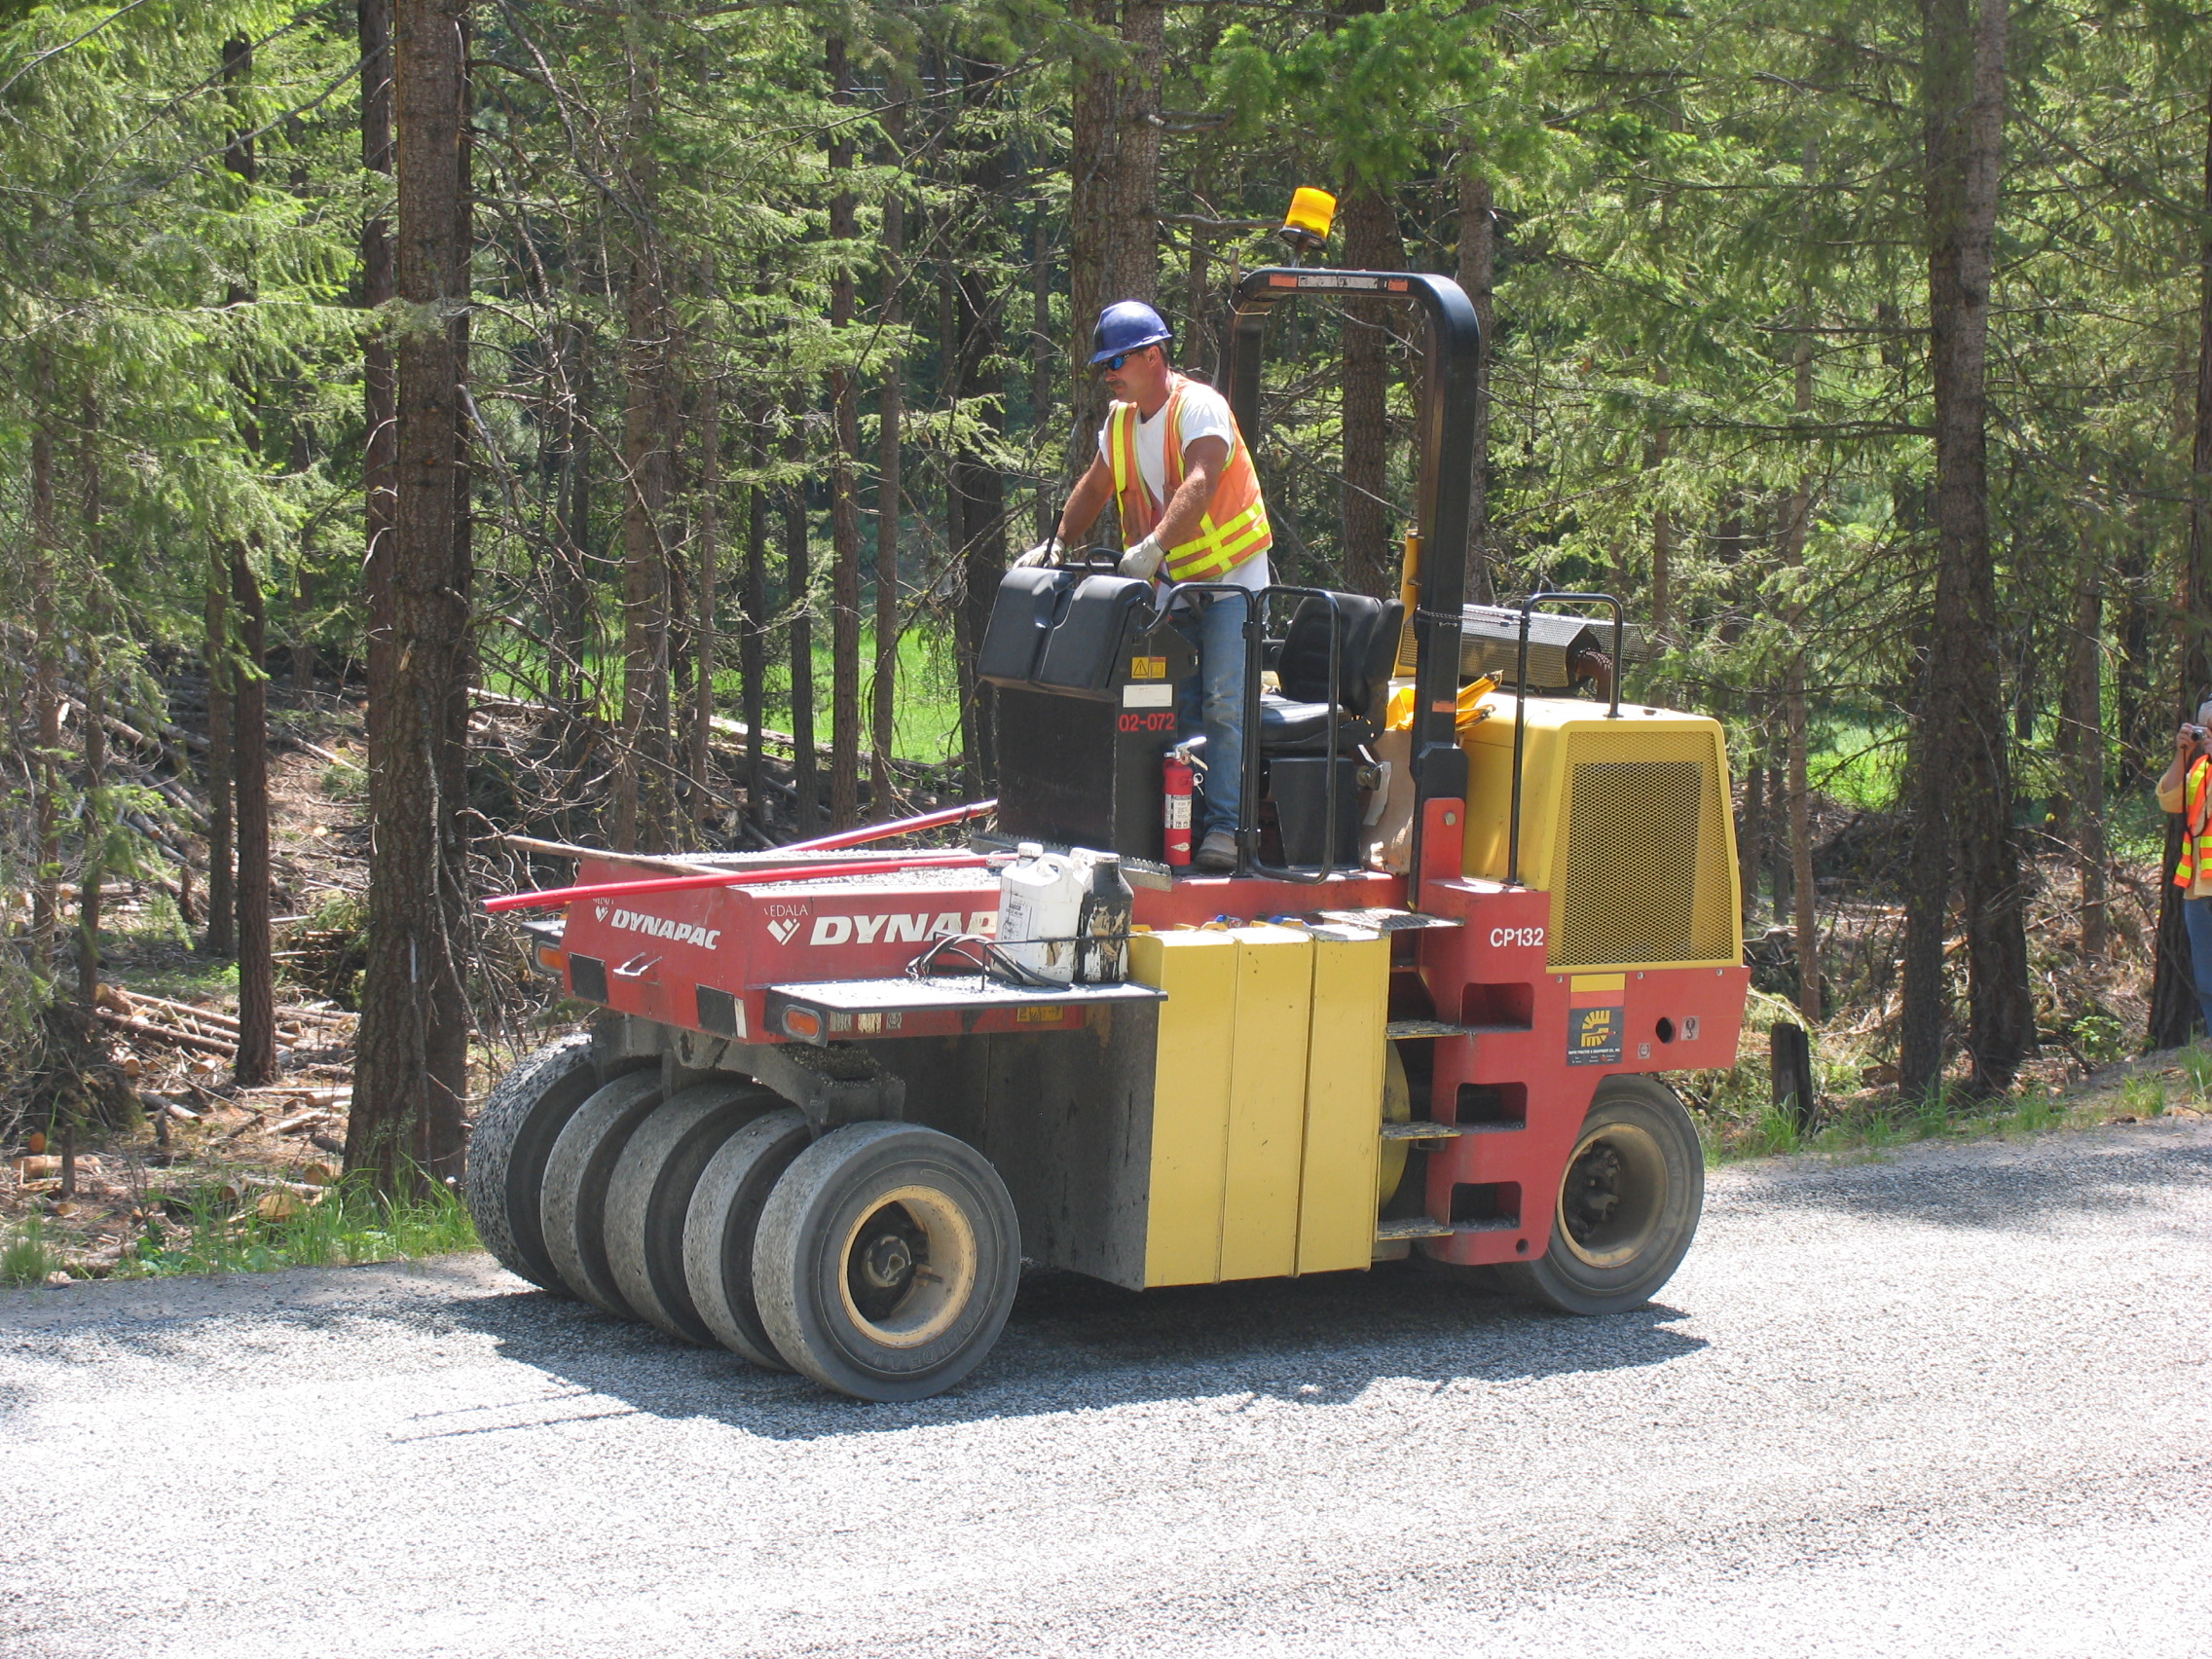 Embedding the aggregate into the asphalt using a pneumatic tire roller.